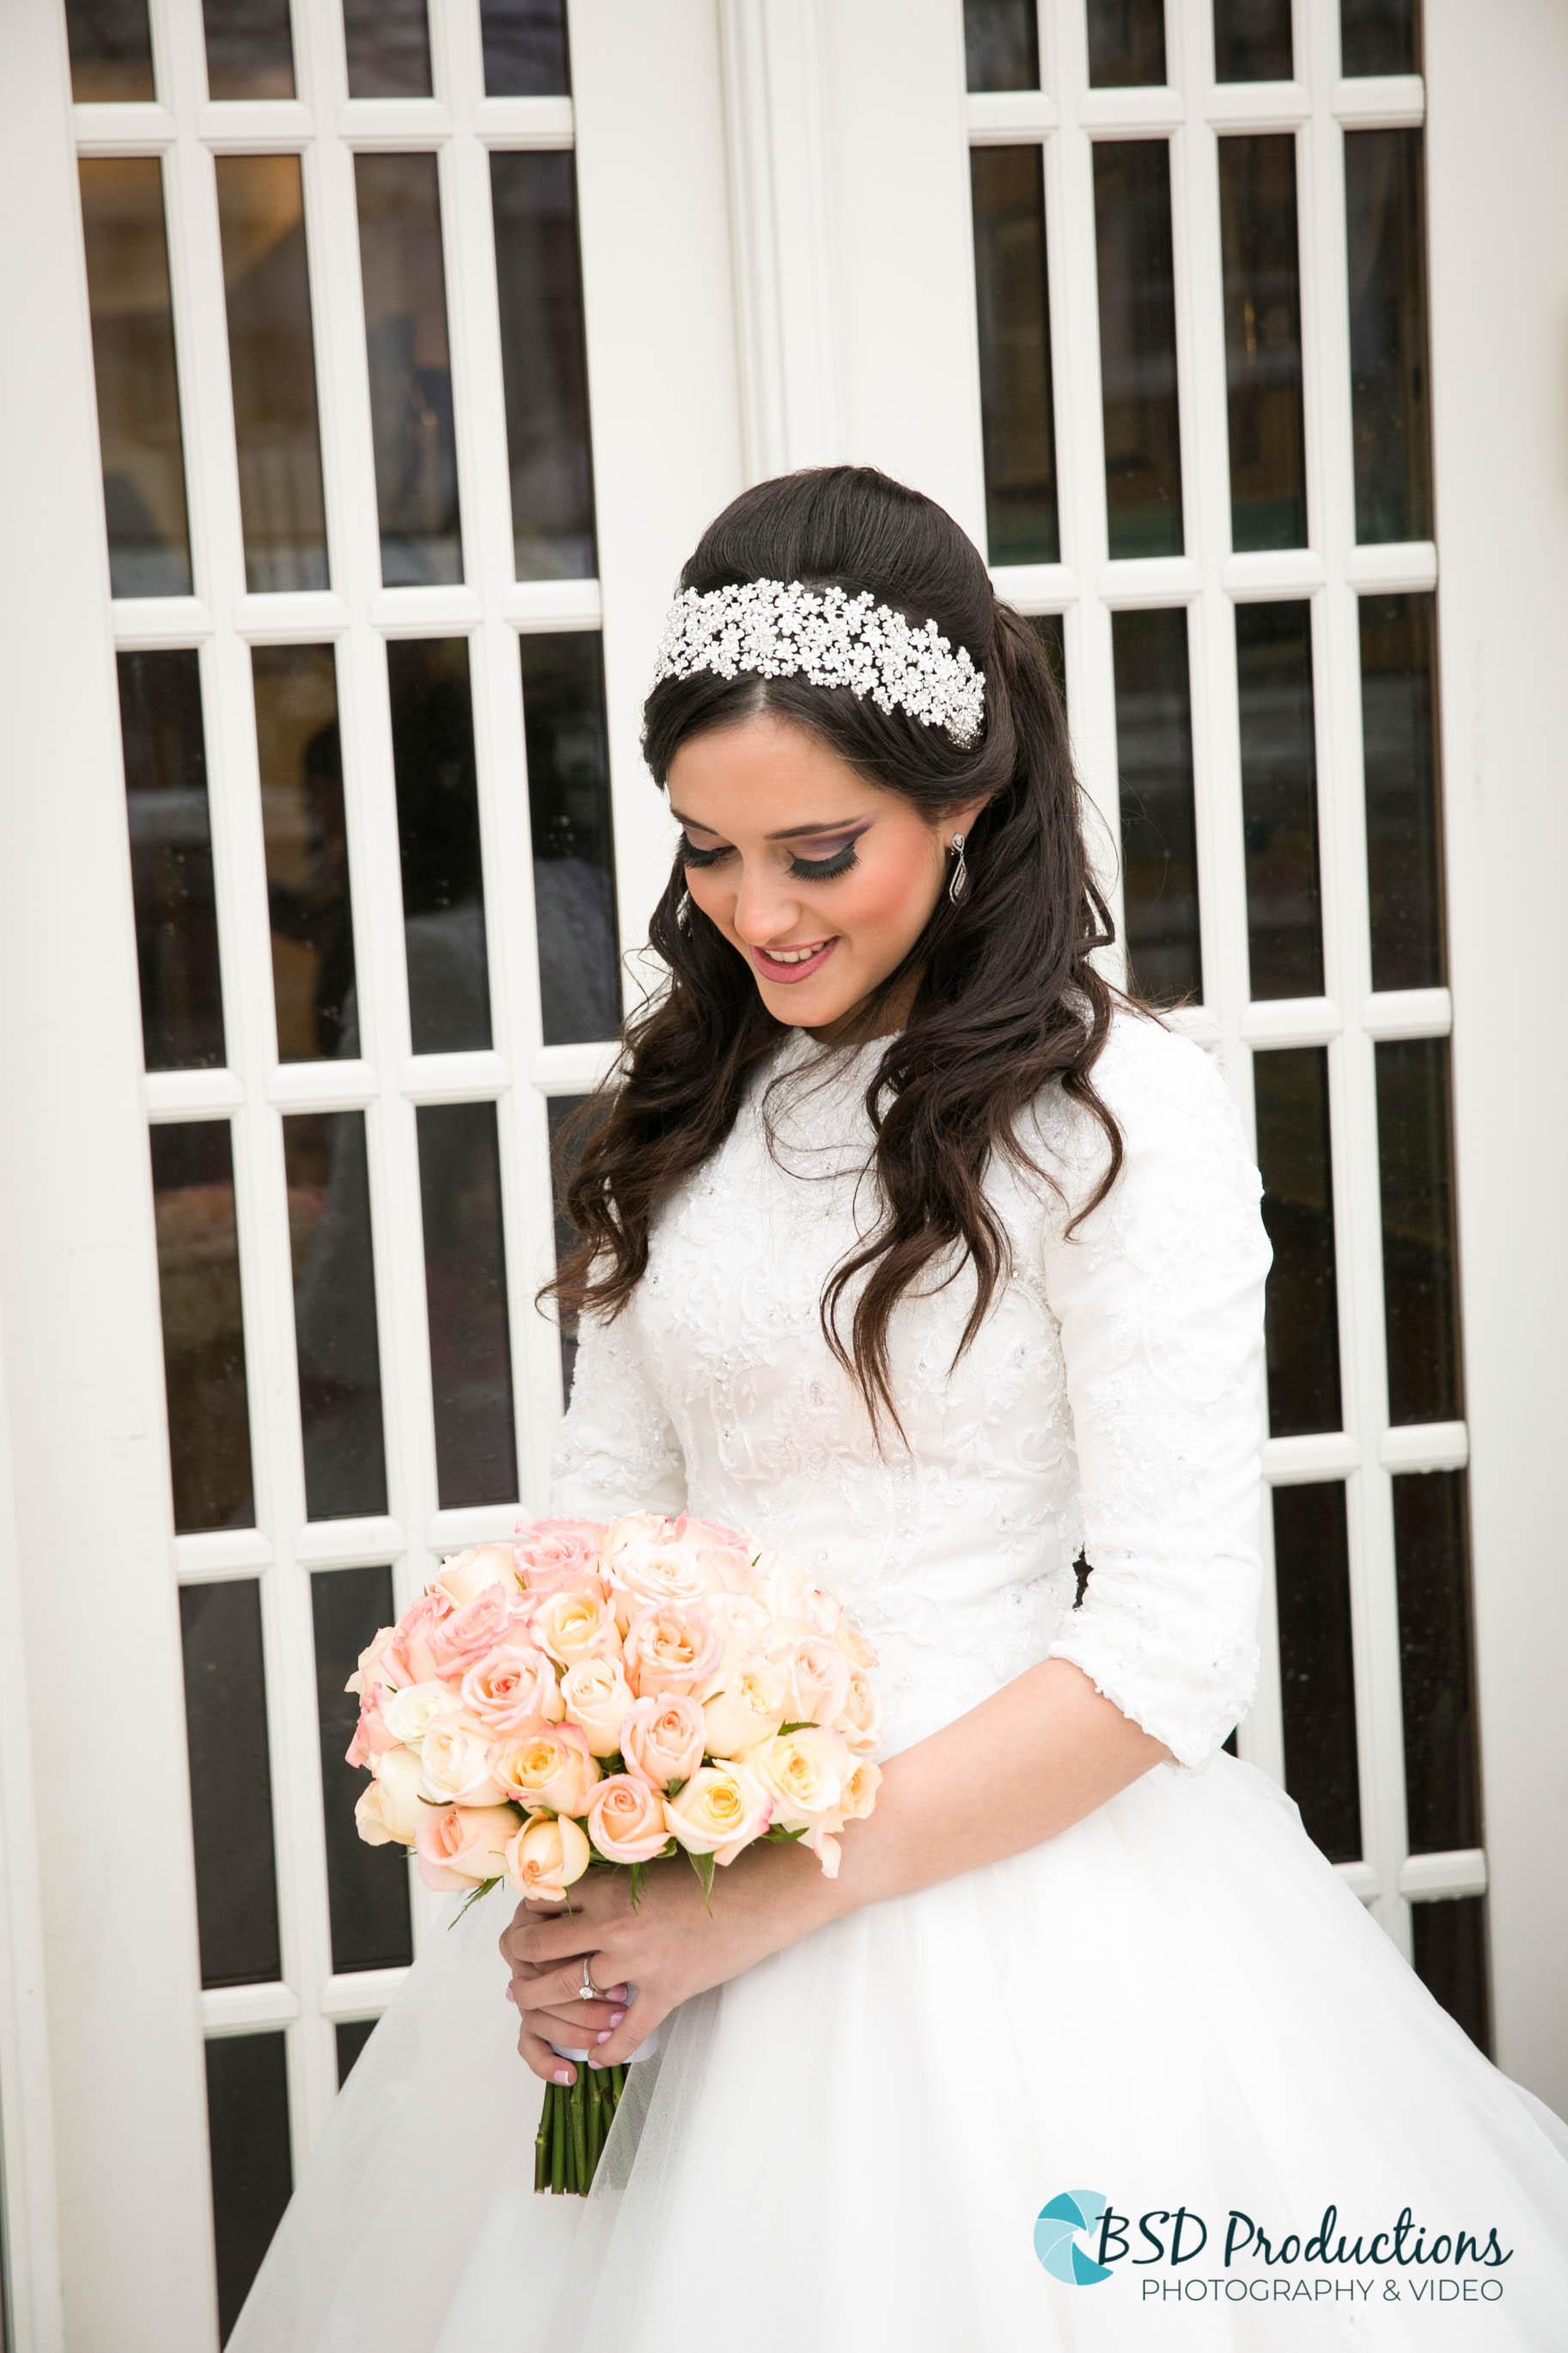 UH5A0196 Wedding – BSD Productions Photography